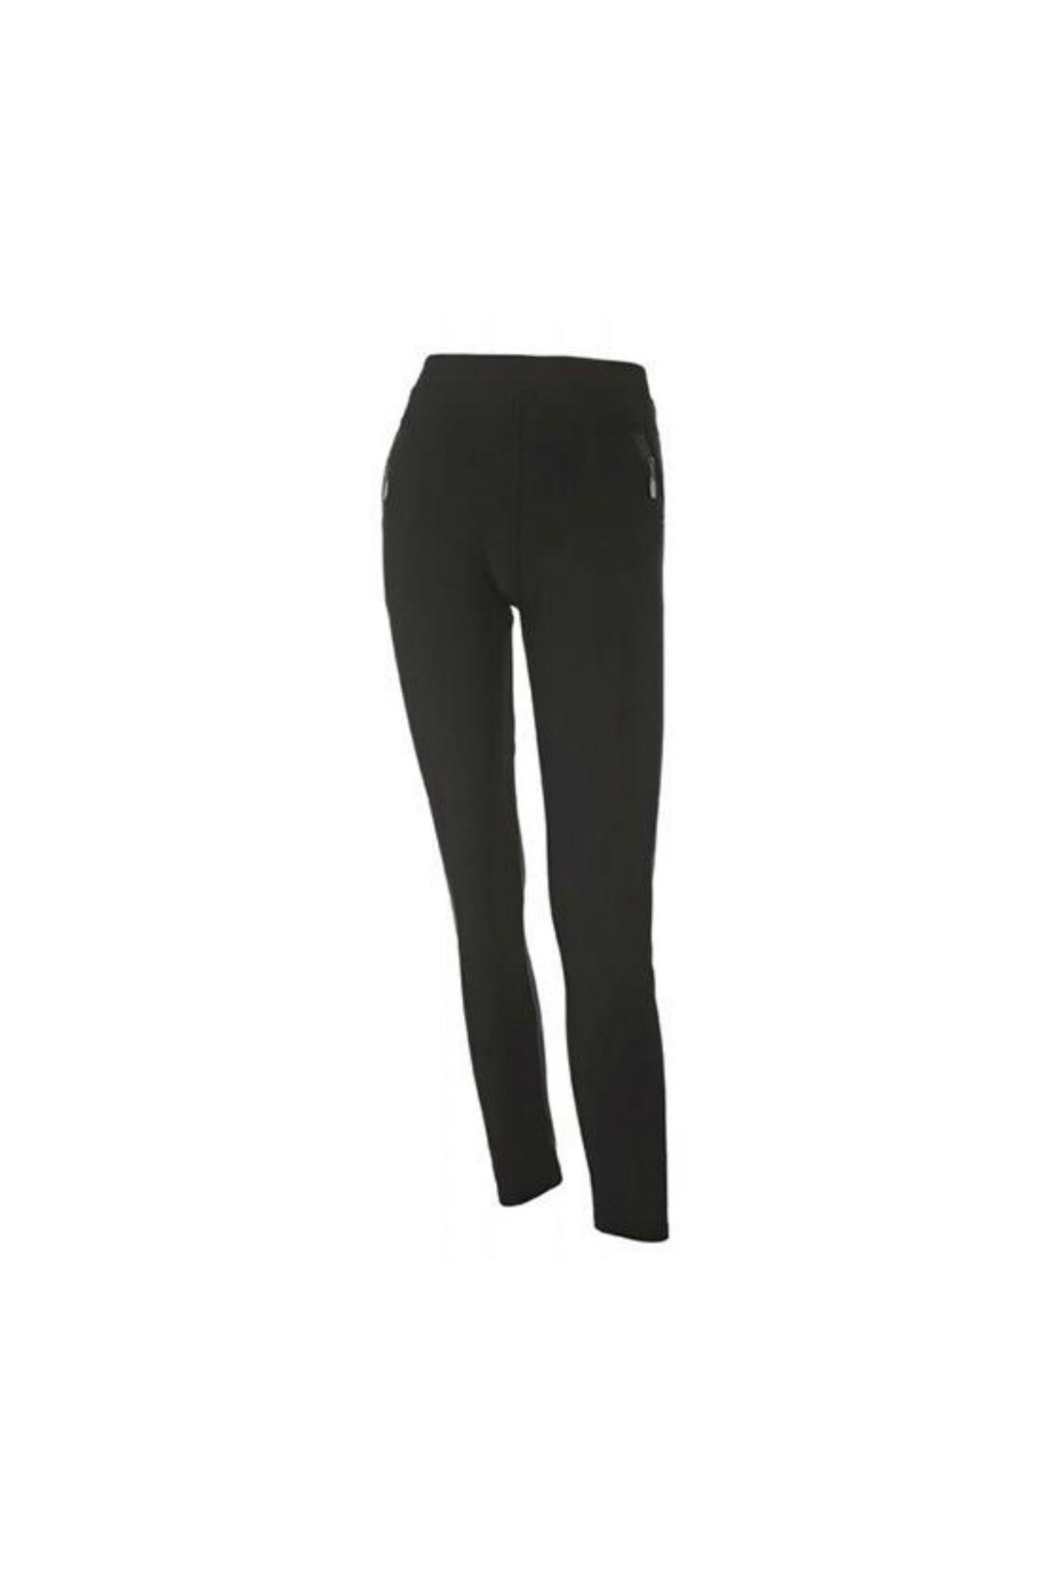 Coco + Carmen Black Zip Leggings - Front Cropped Image